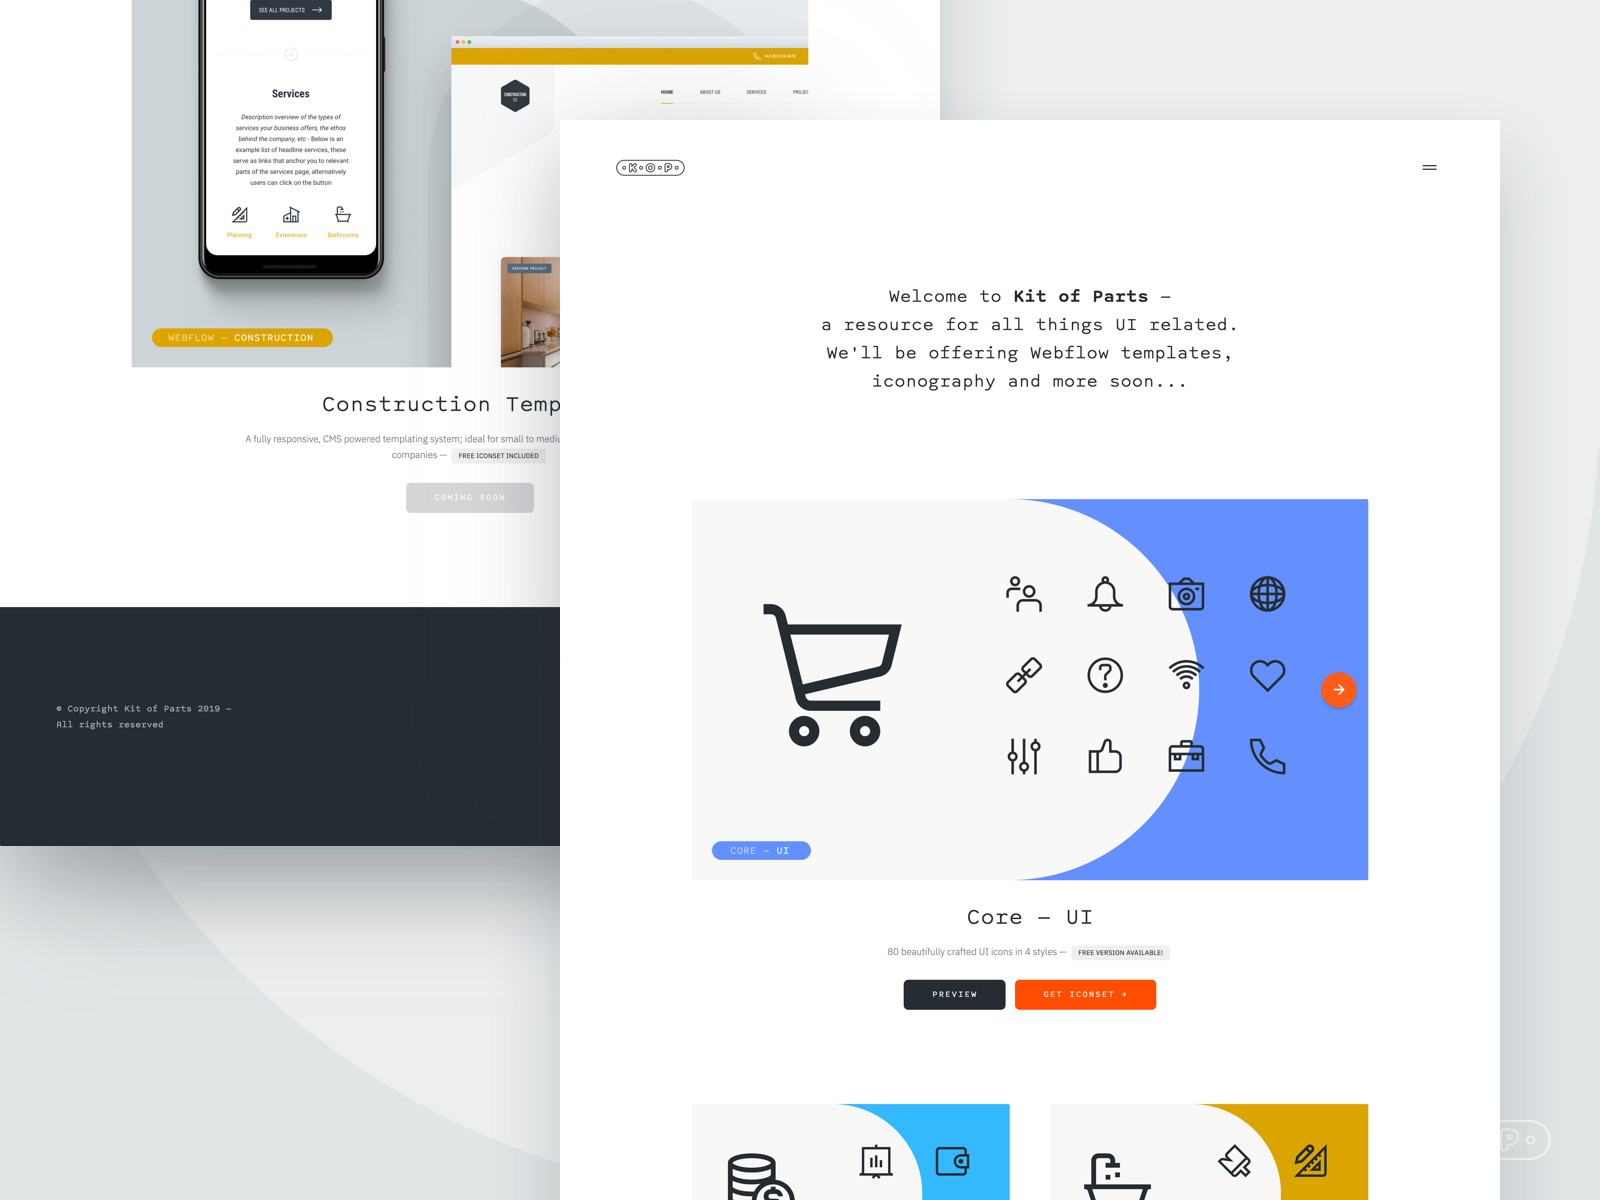 Kit of Parts - New Website! by Kit of Parts on Dribbble